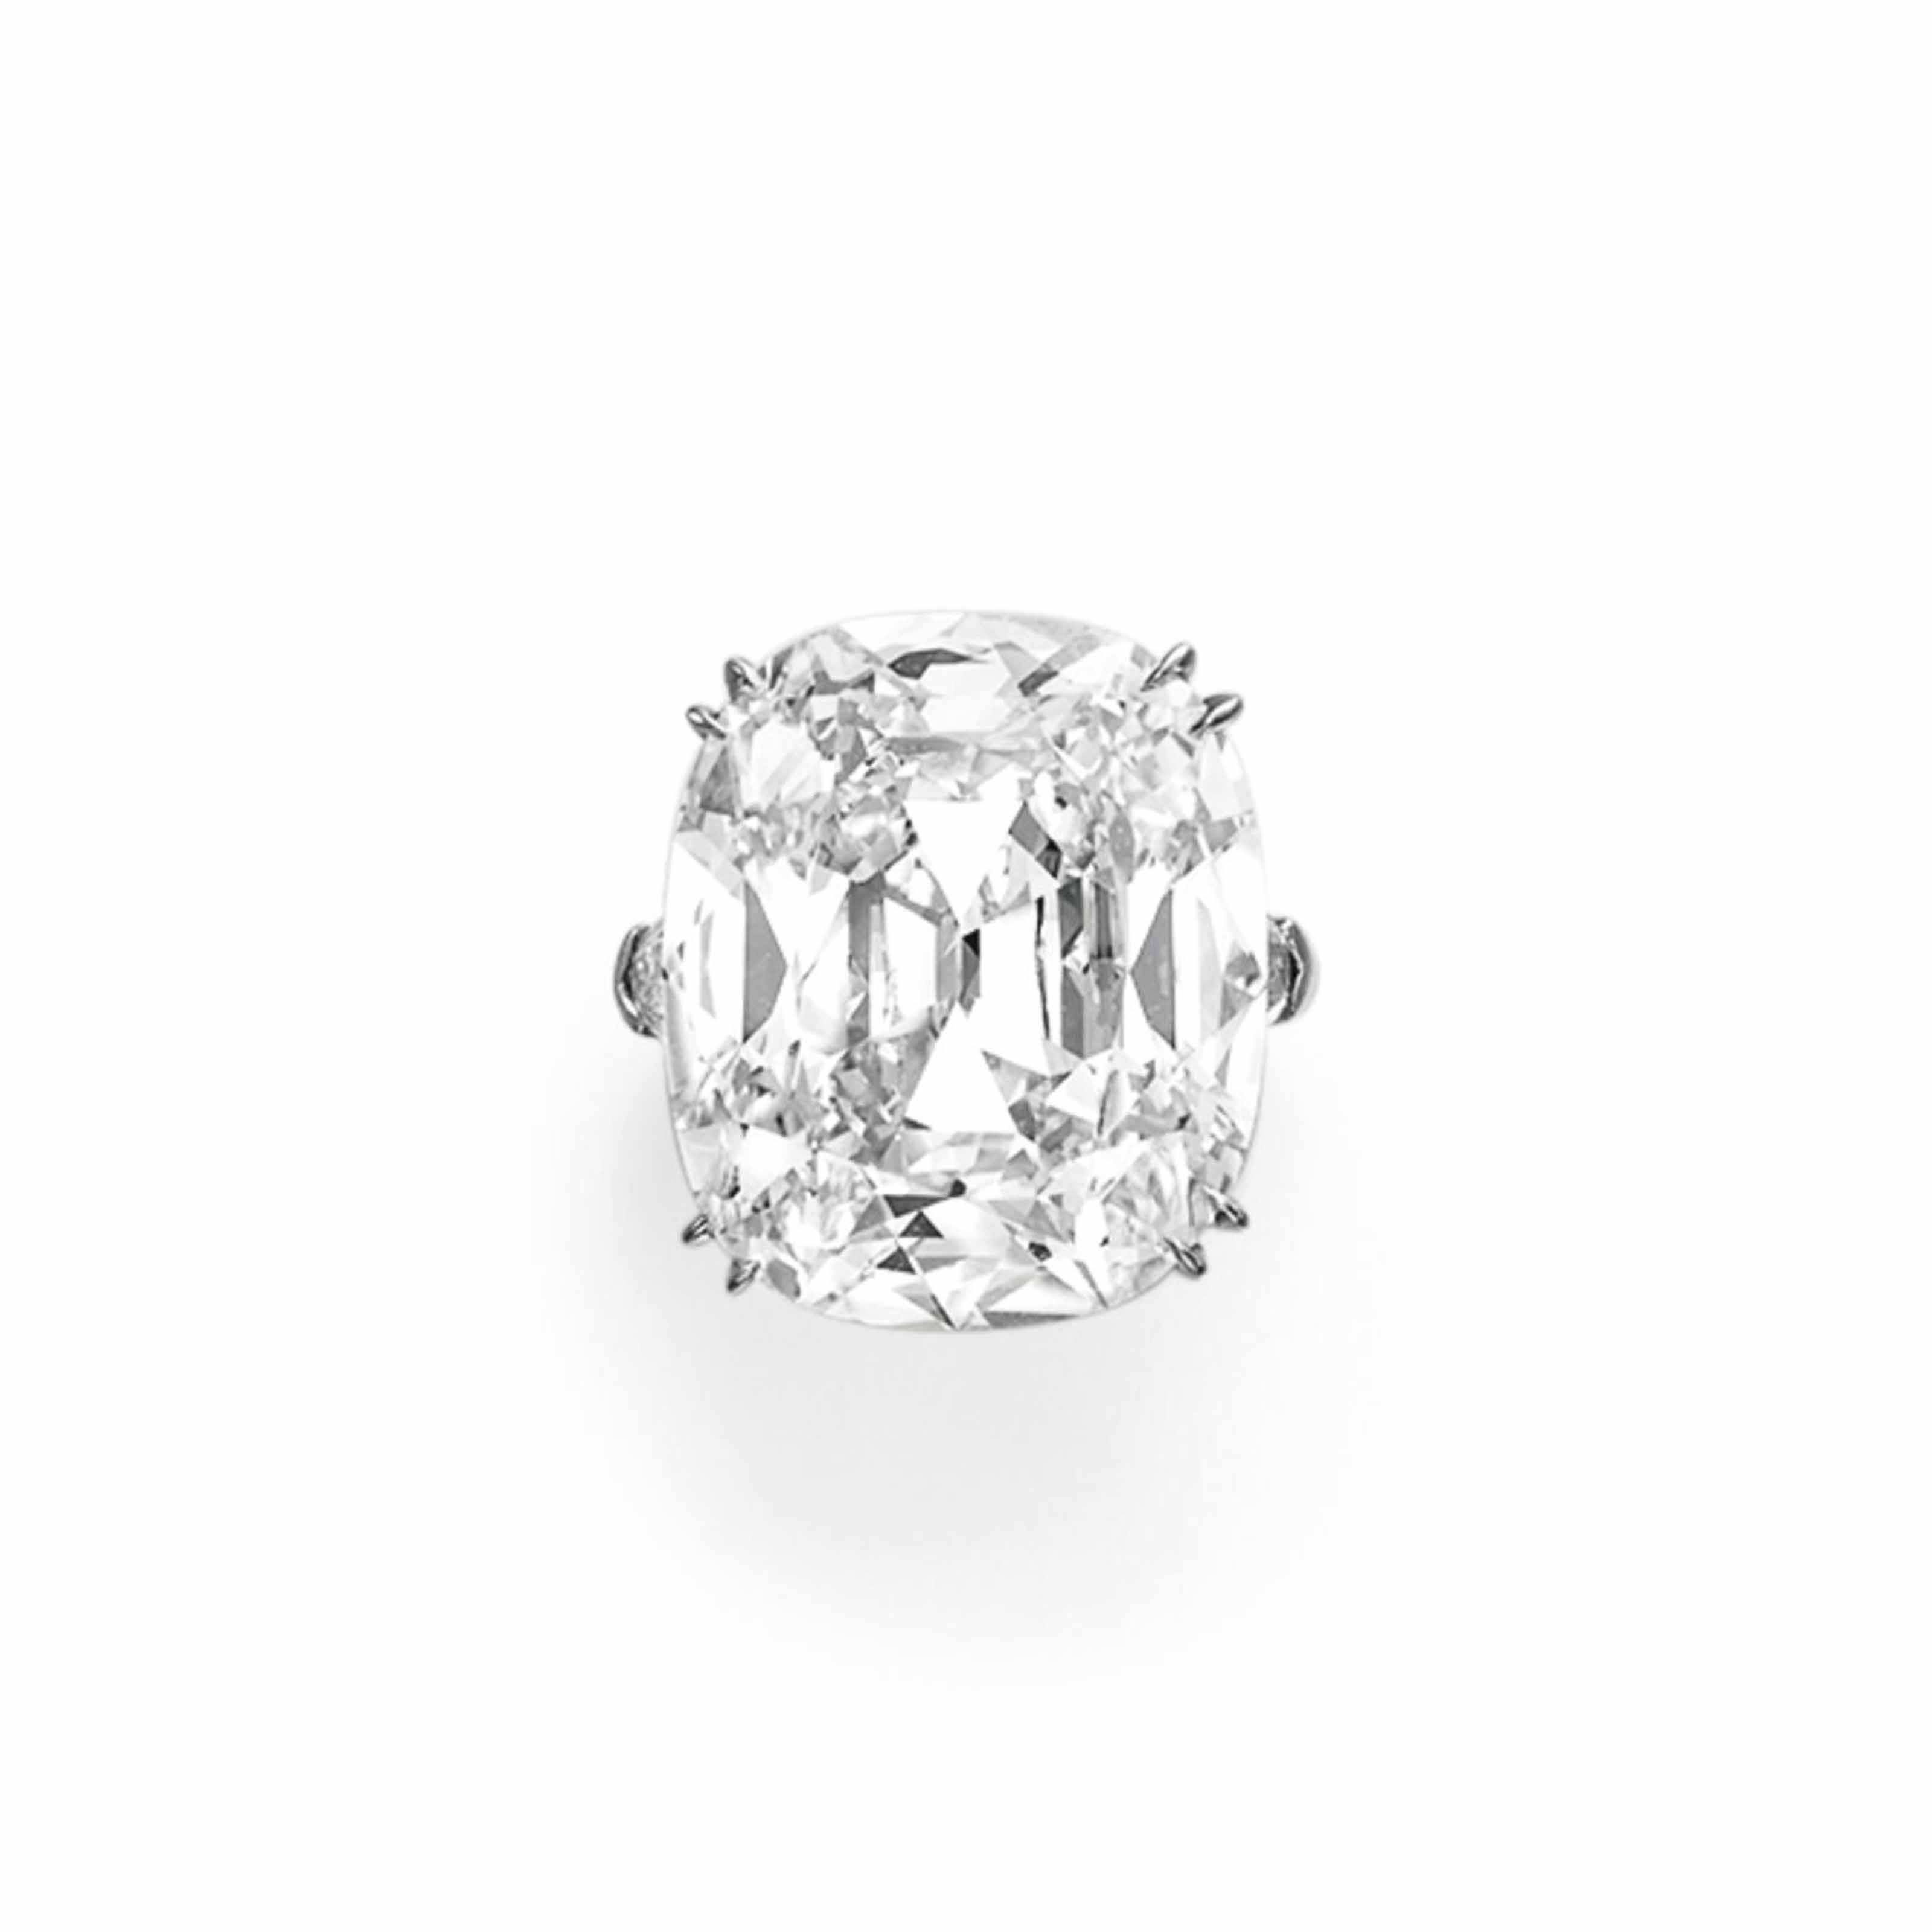 A MAGNIFICENT DIAMOND RING, BY LEVIEV